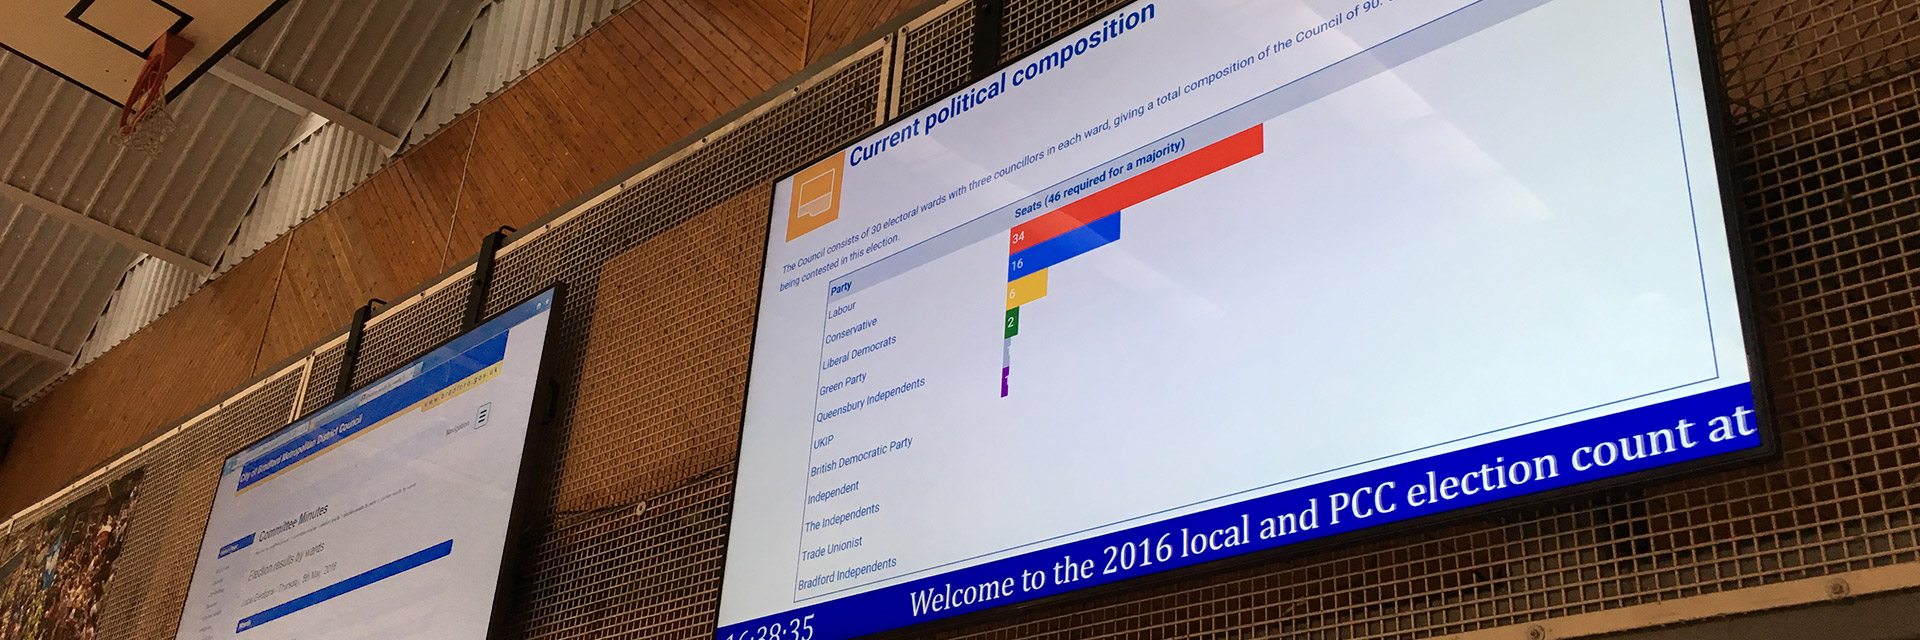 2x 95 Inch Digital Displays for Bradford Council Elections